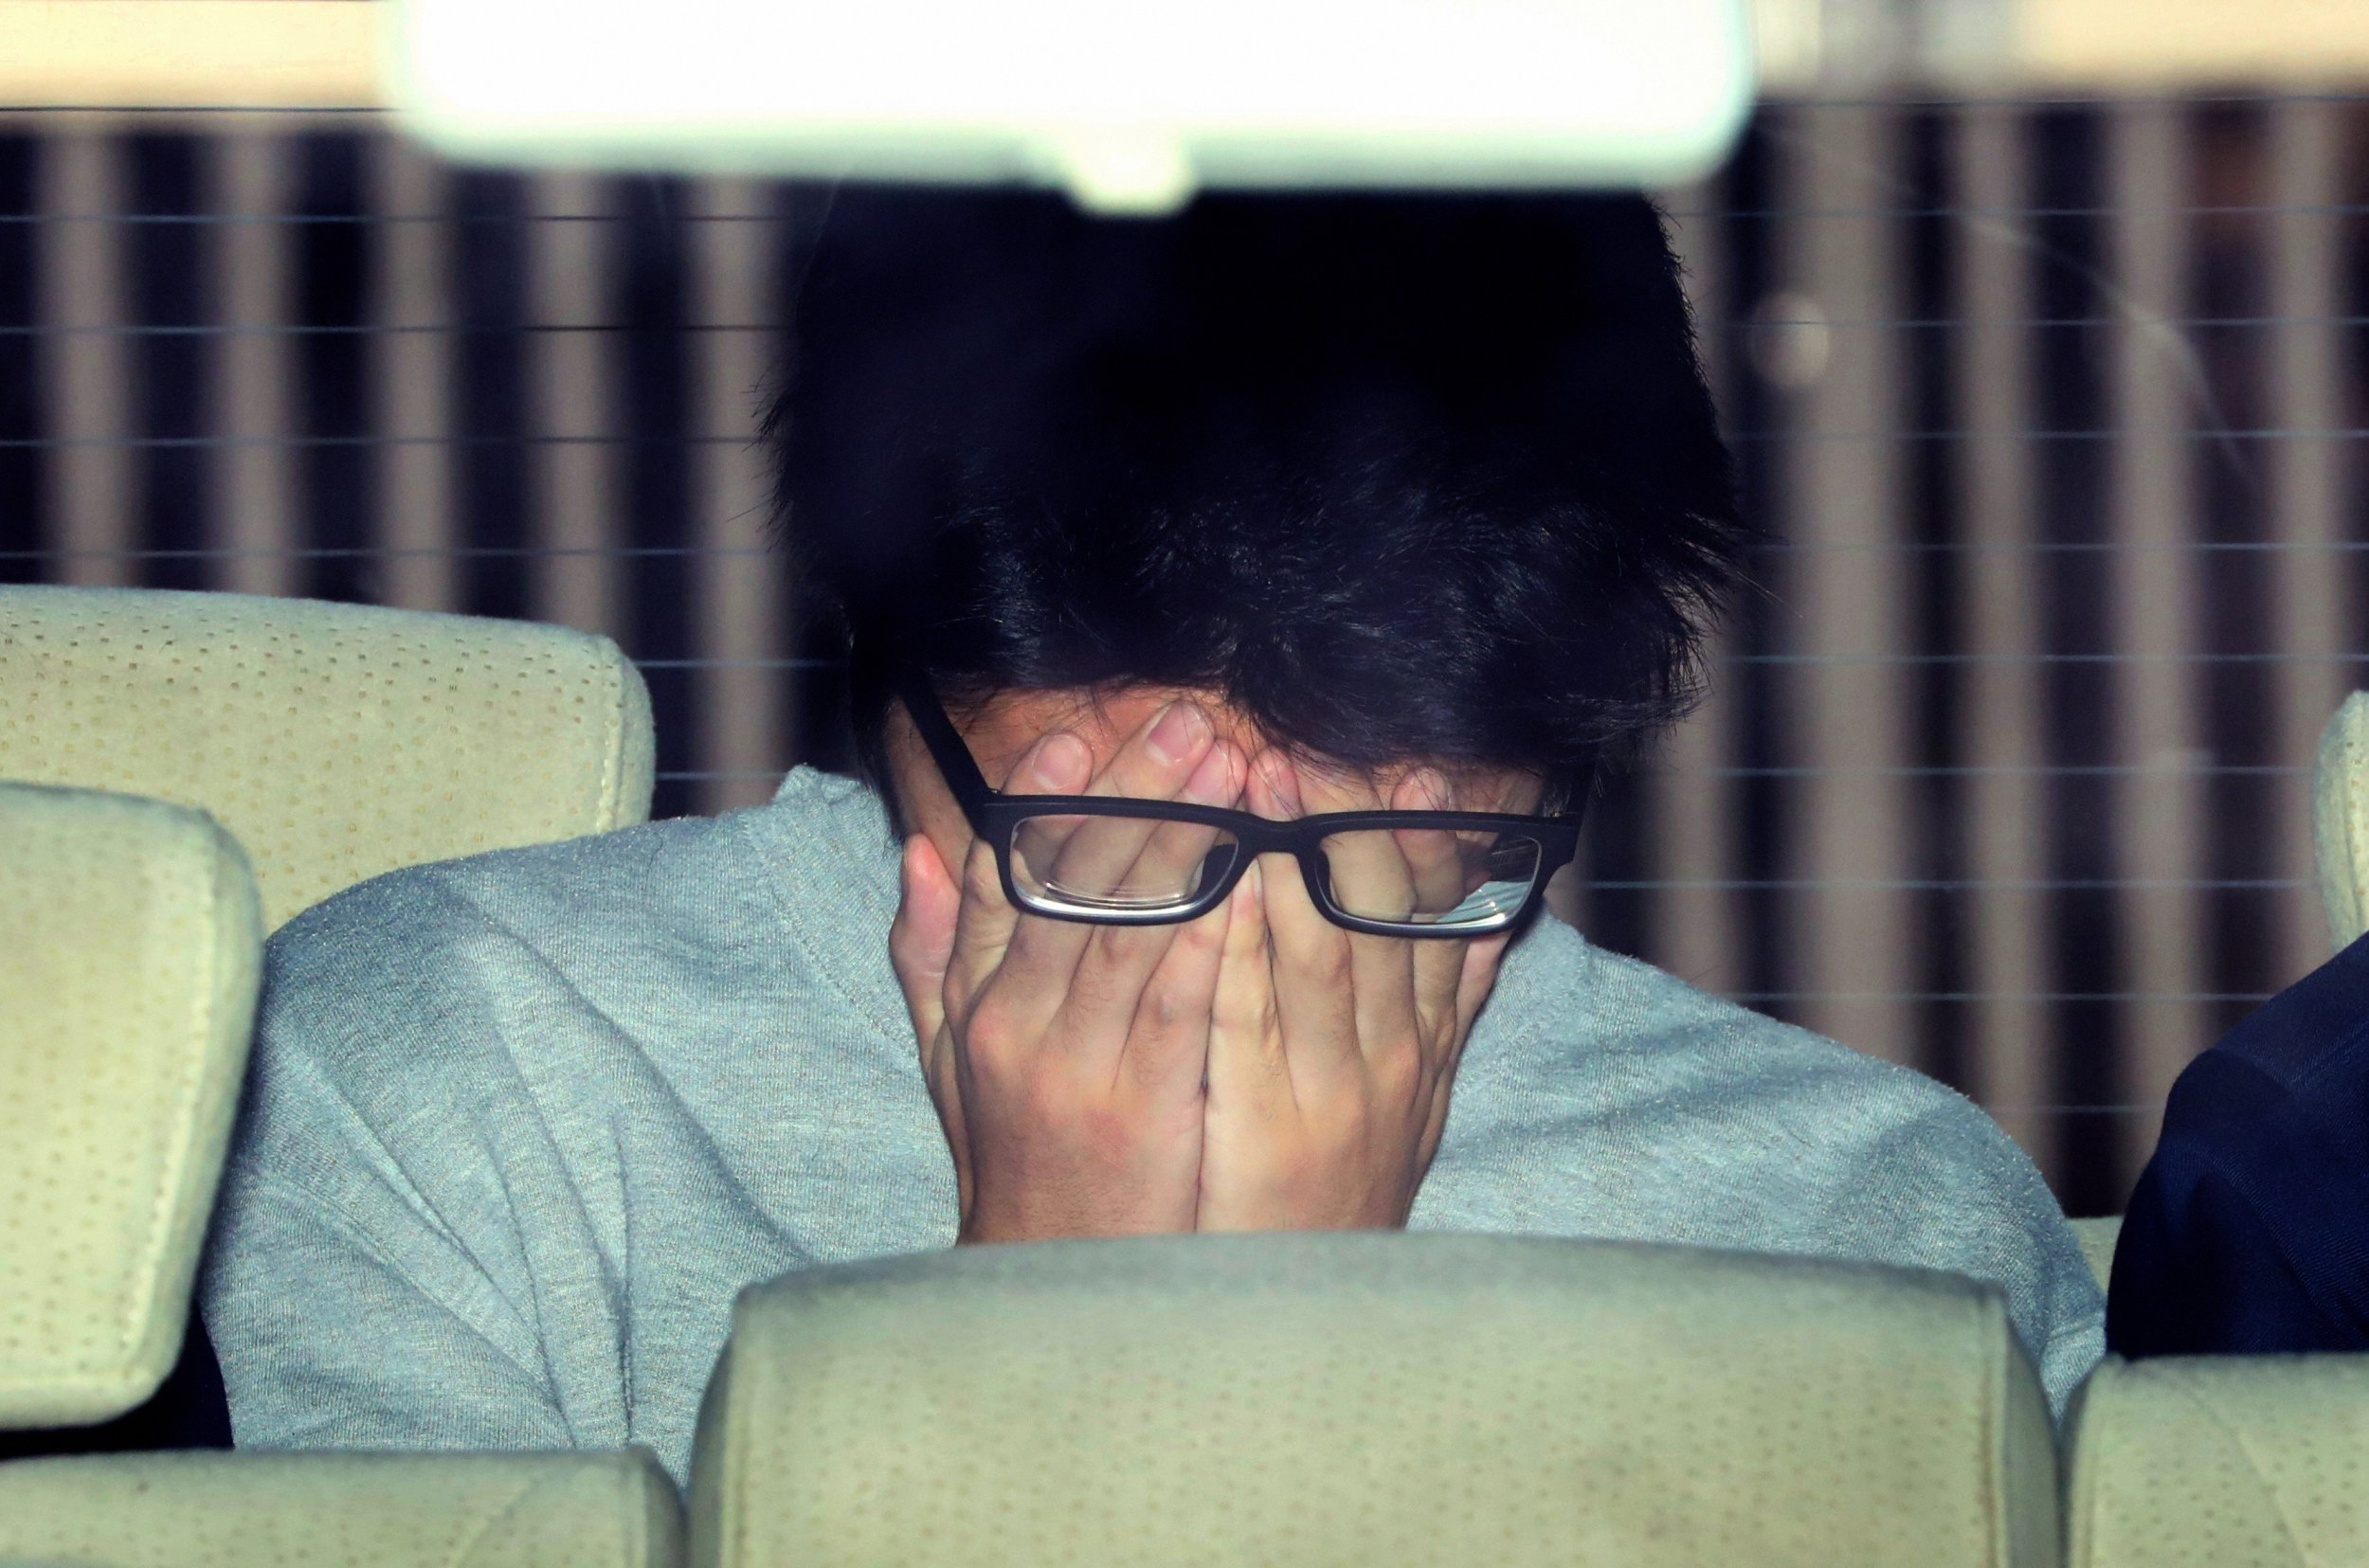 HACHIOJI, JAPAN - NOVEMBER 01: (CHINA OUT, SOUTH KOREA OUT) Suspect Takahiro Shiraishi covering his face is seen on departure at Takao Police Station as he is transferred to prosecutors on November 1, 2017 in Hachioji, Tokyo, Japan. Shiraishi, unemployed, was arrested on October 31 on suspicion of abandoning the body of one of the nine people, eight of whom were women, after police found heads, legs and arms in storage boxes and coolers in his apartment. Police have found nine human heads and about 240 pieces of bones and other body parts in his apartment. (Photo by The Asahi Shimbun via Getty Images)